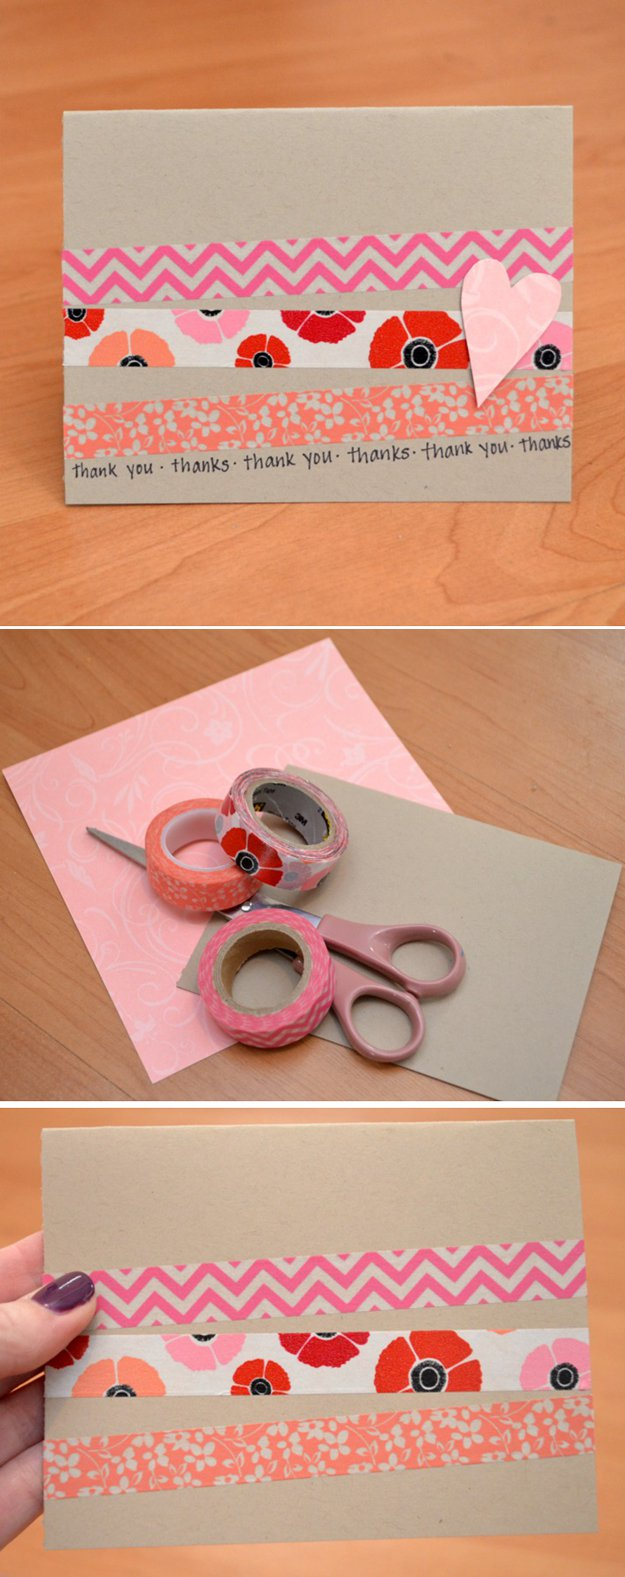 Washi Tape Crafts - Five Minute Handmade Card - Wall Art, Frames, Cards, Pencils, Room Decor and DIY Gifts, Back To School Supplies - Creative, Fun Craft Ideas for Teens, Tweens and Teenagers - Step by Step Tutorials and Instructions http://diyprojectsforteens.com/washi-tape-crafts